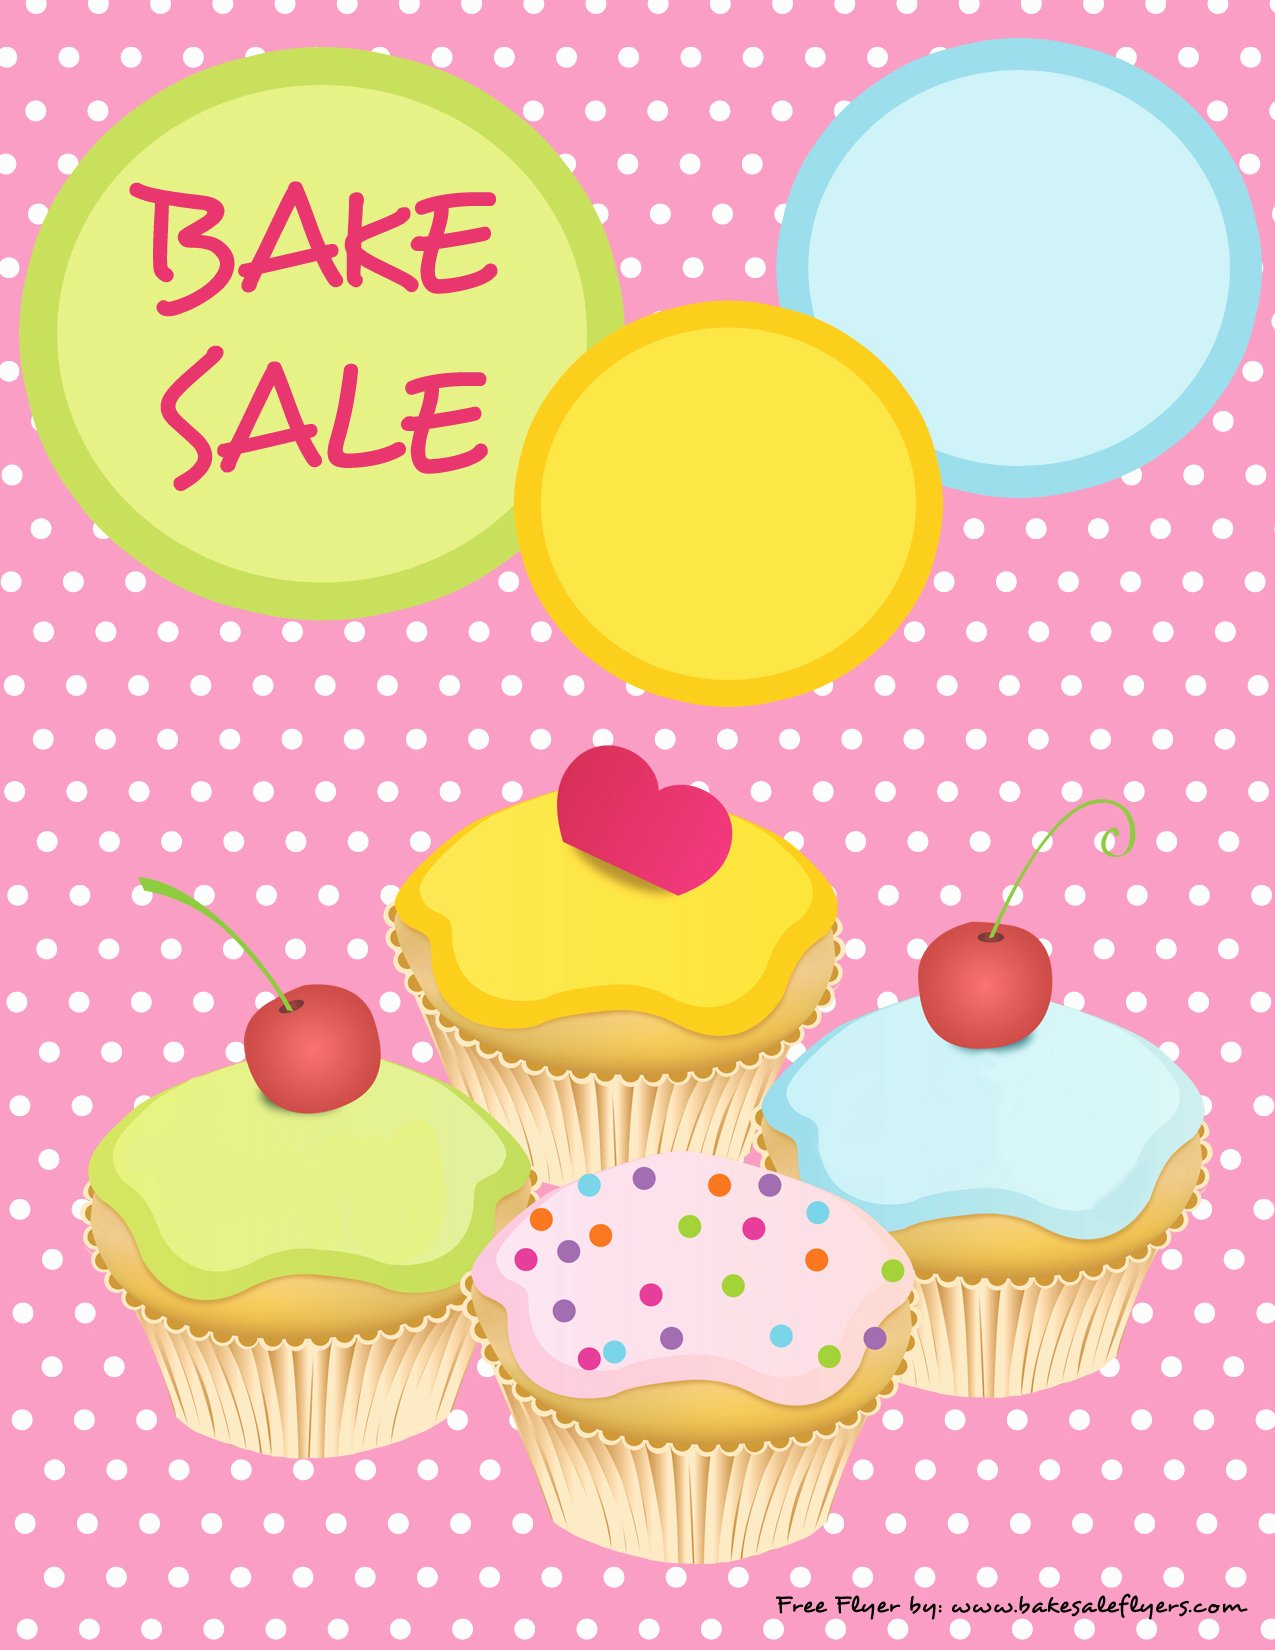 Bake Sale Flyer Template Beautiful Bake Sale Flyers – Free Flyer Designs